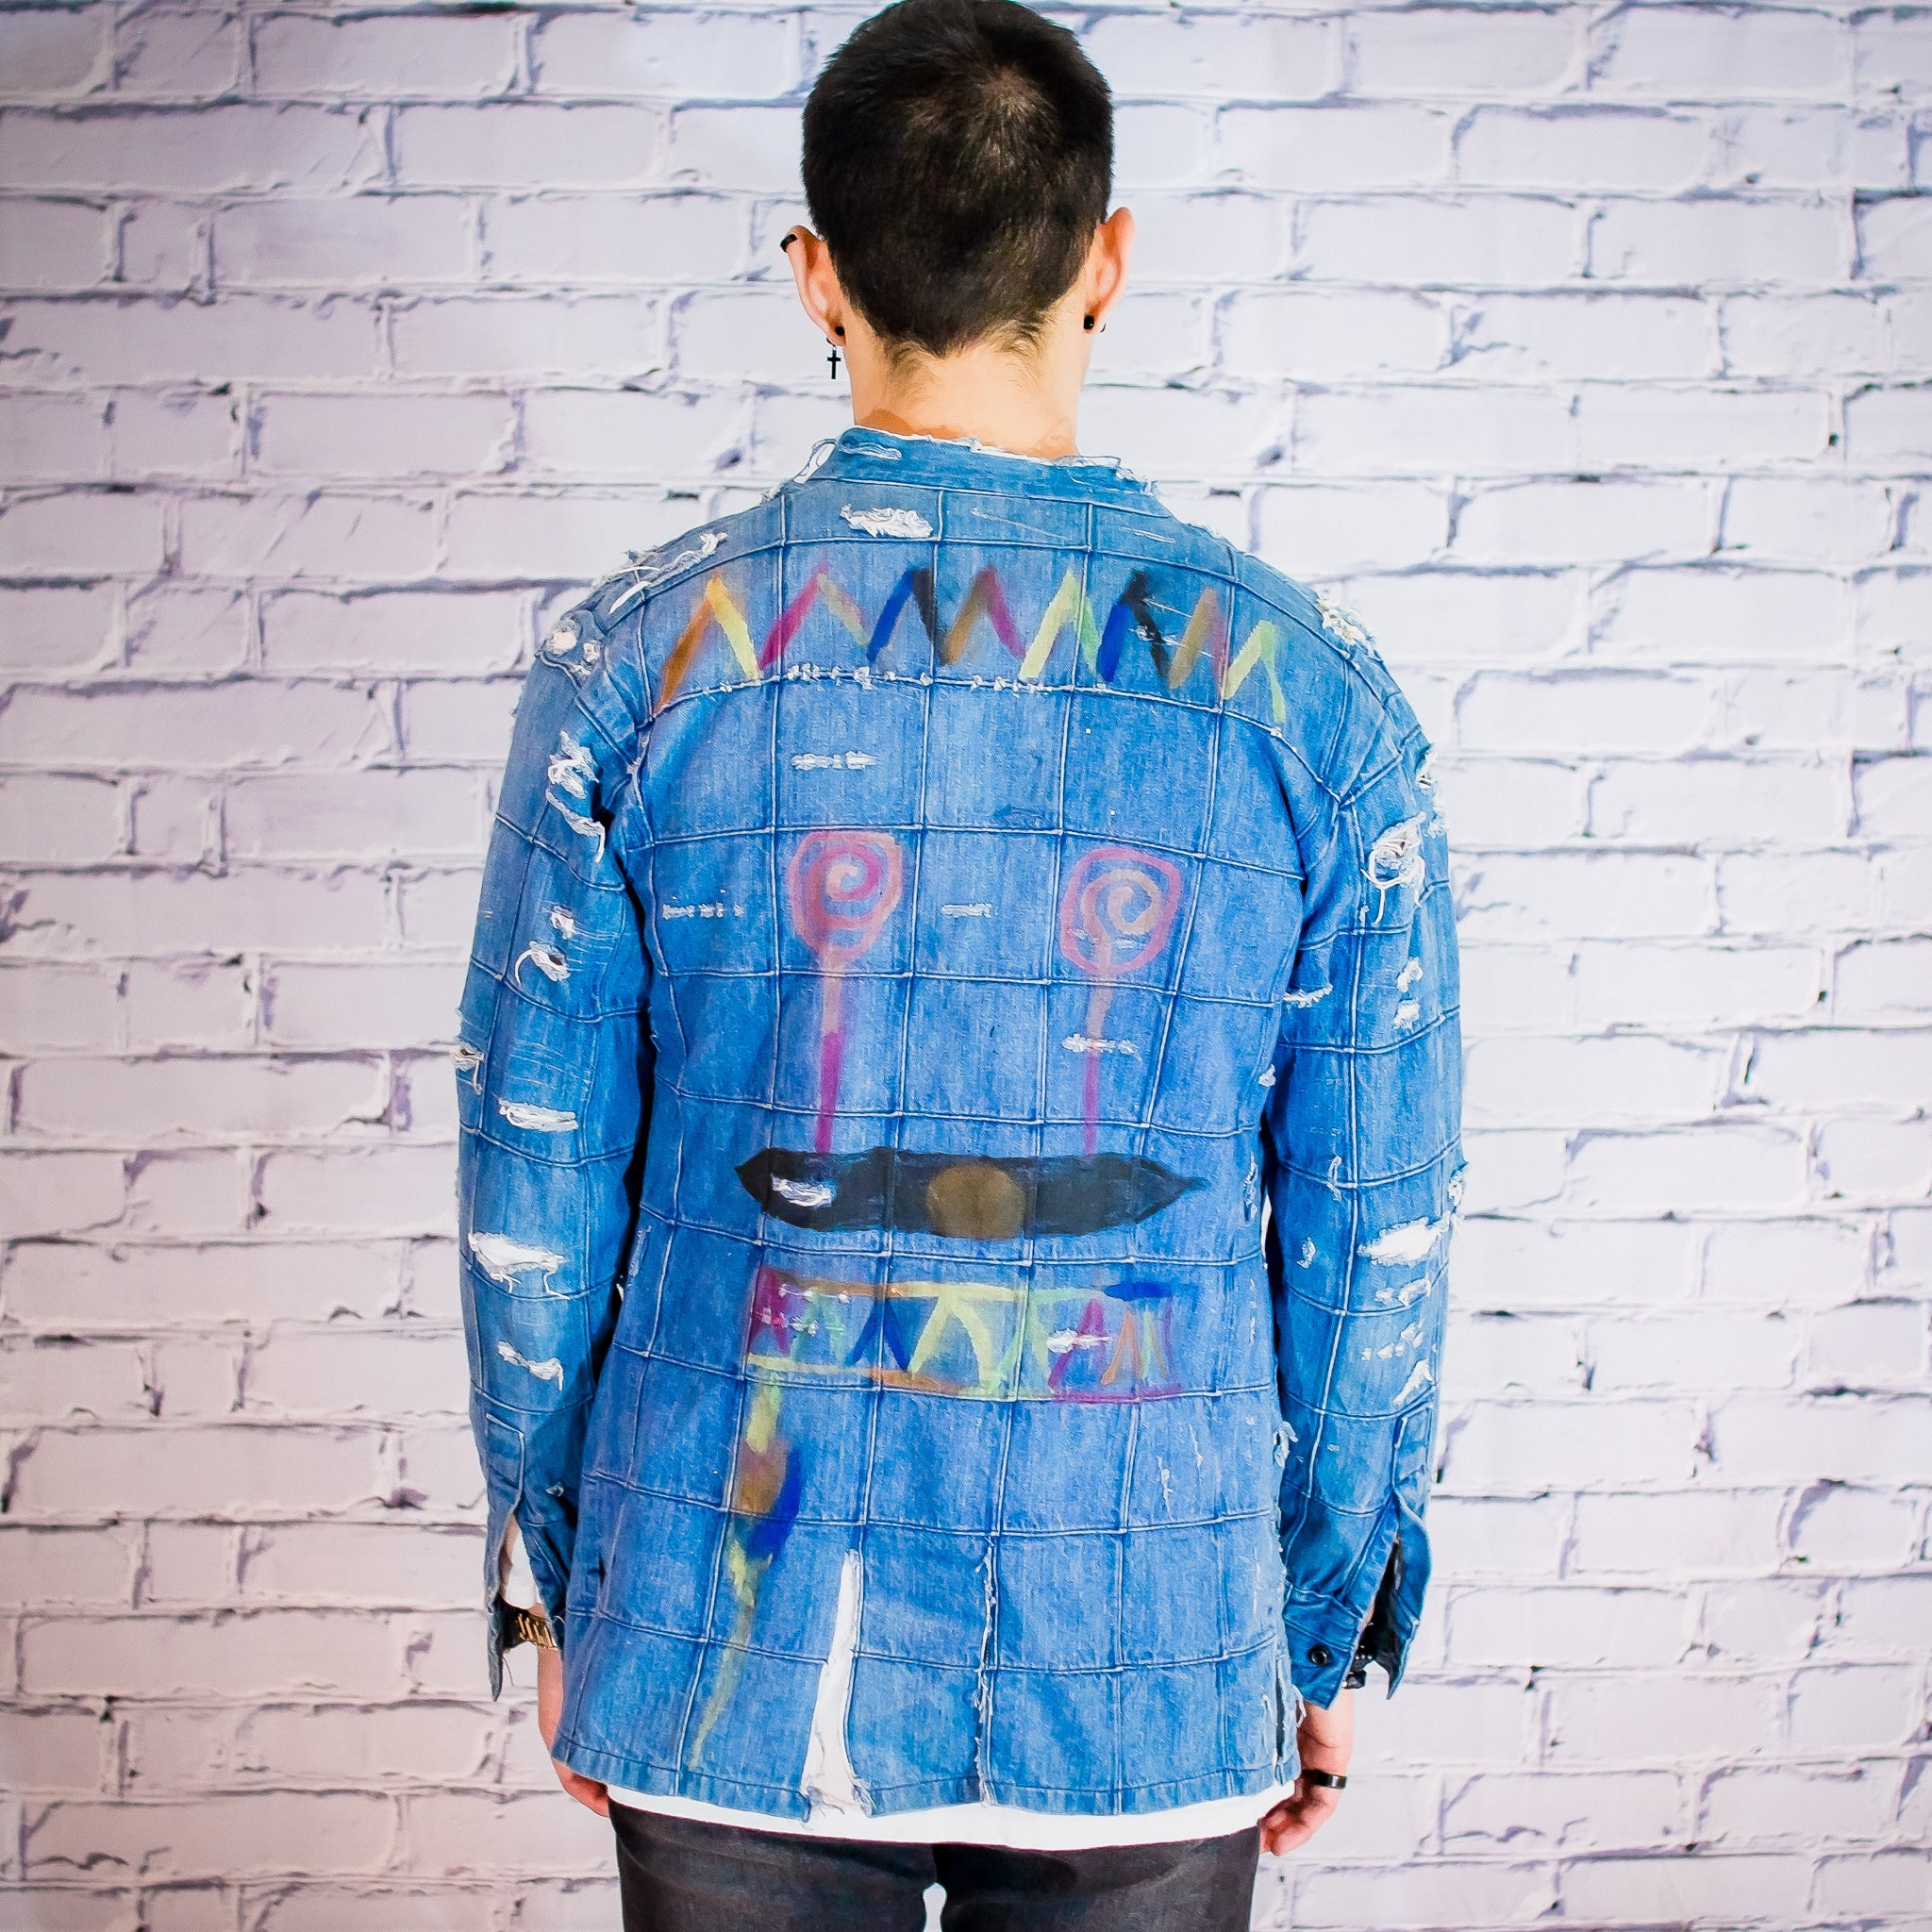 Patchwork denim jacket